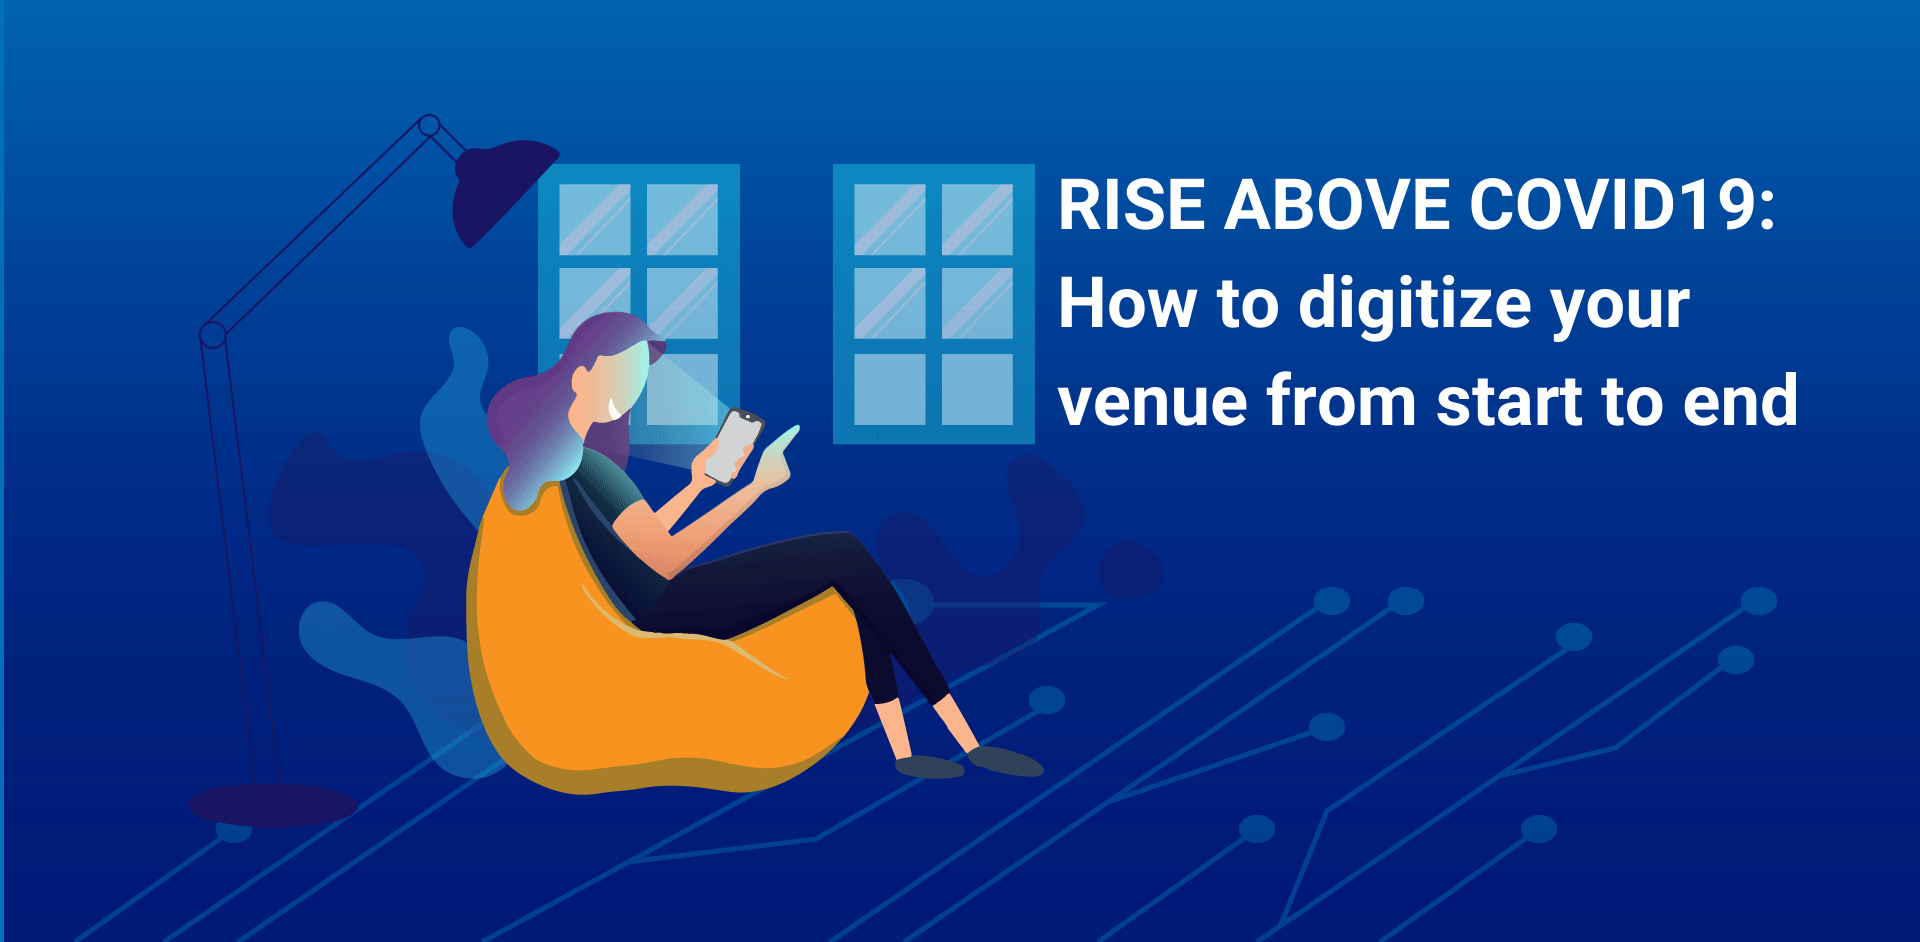 Rise Above COVID19: How to digitize your leisure venue